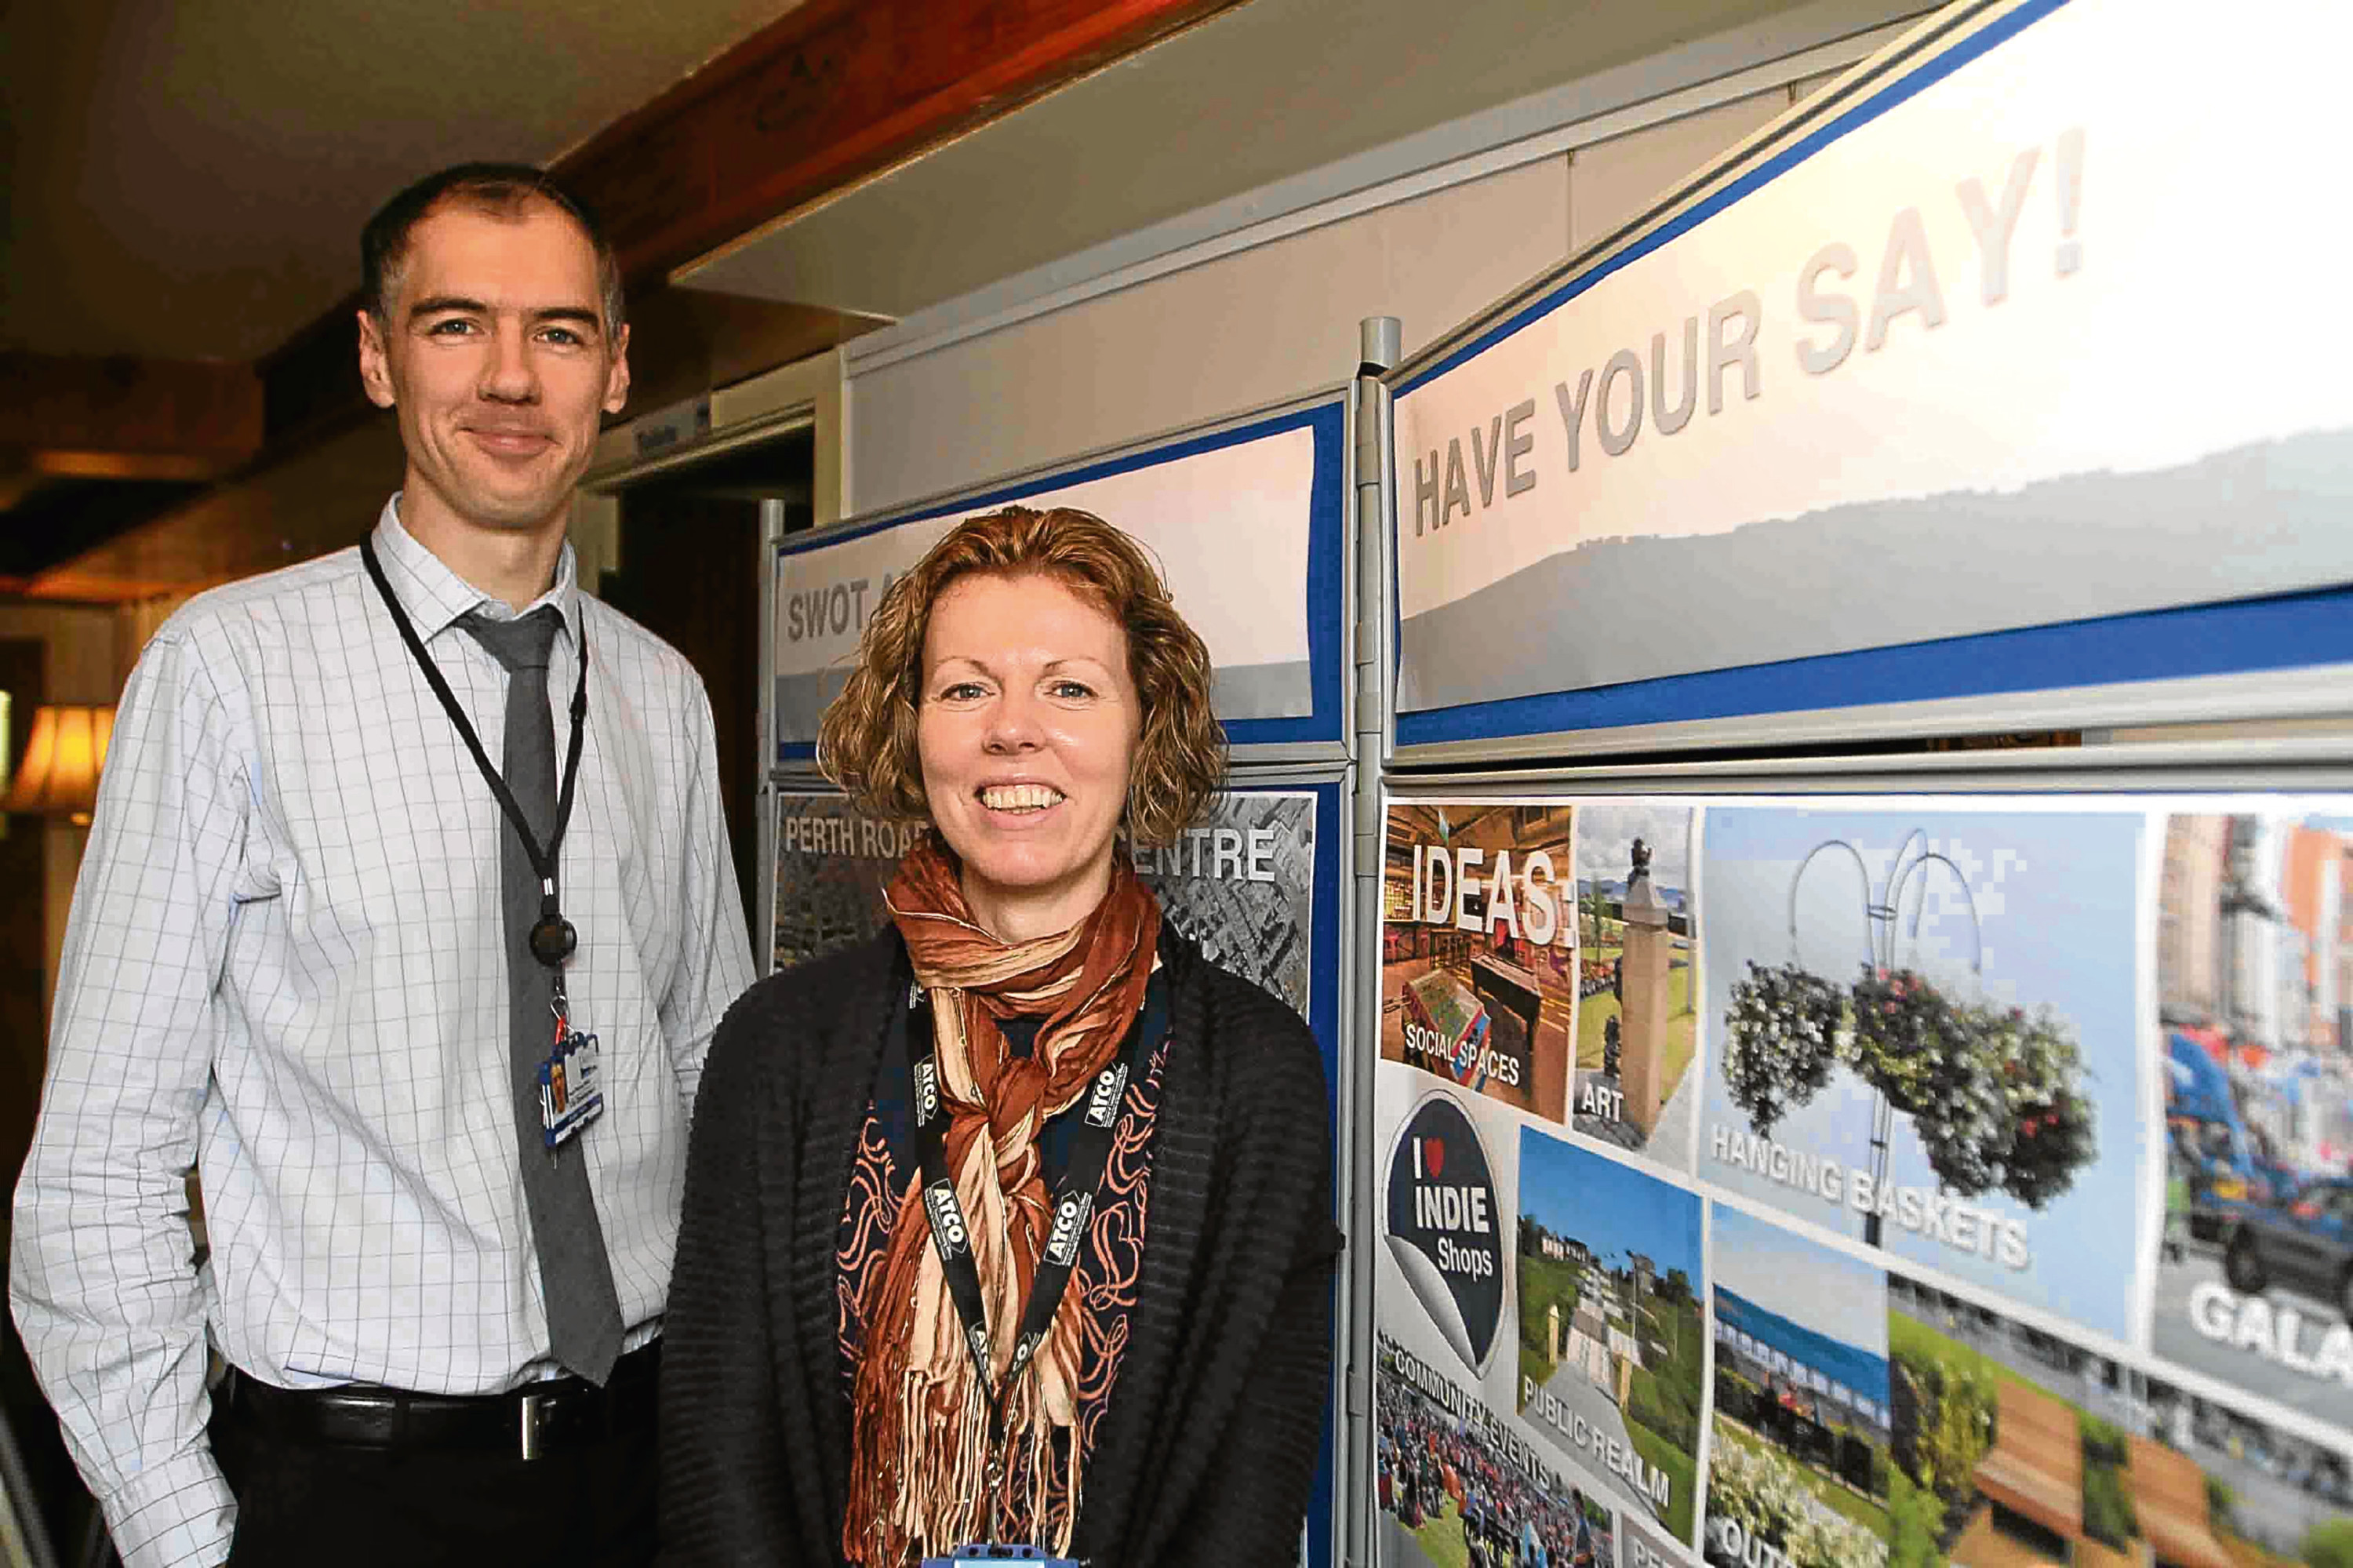 Senior planning officer for city development Alistair Hilton and planning officer Siobhan Johnson.